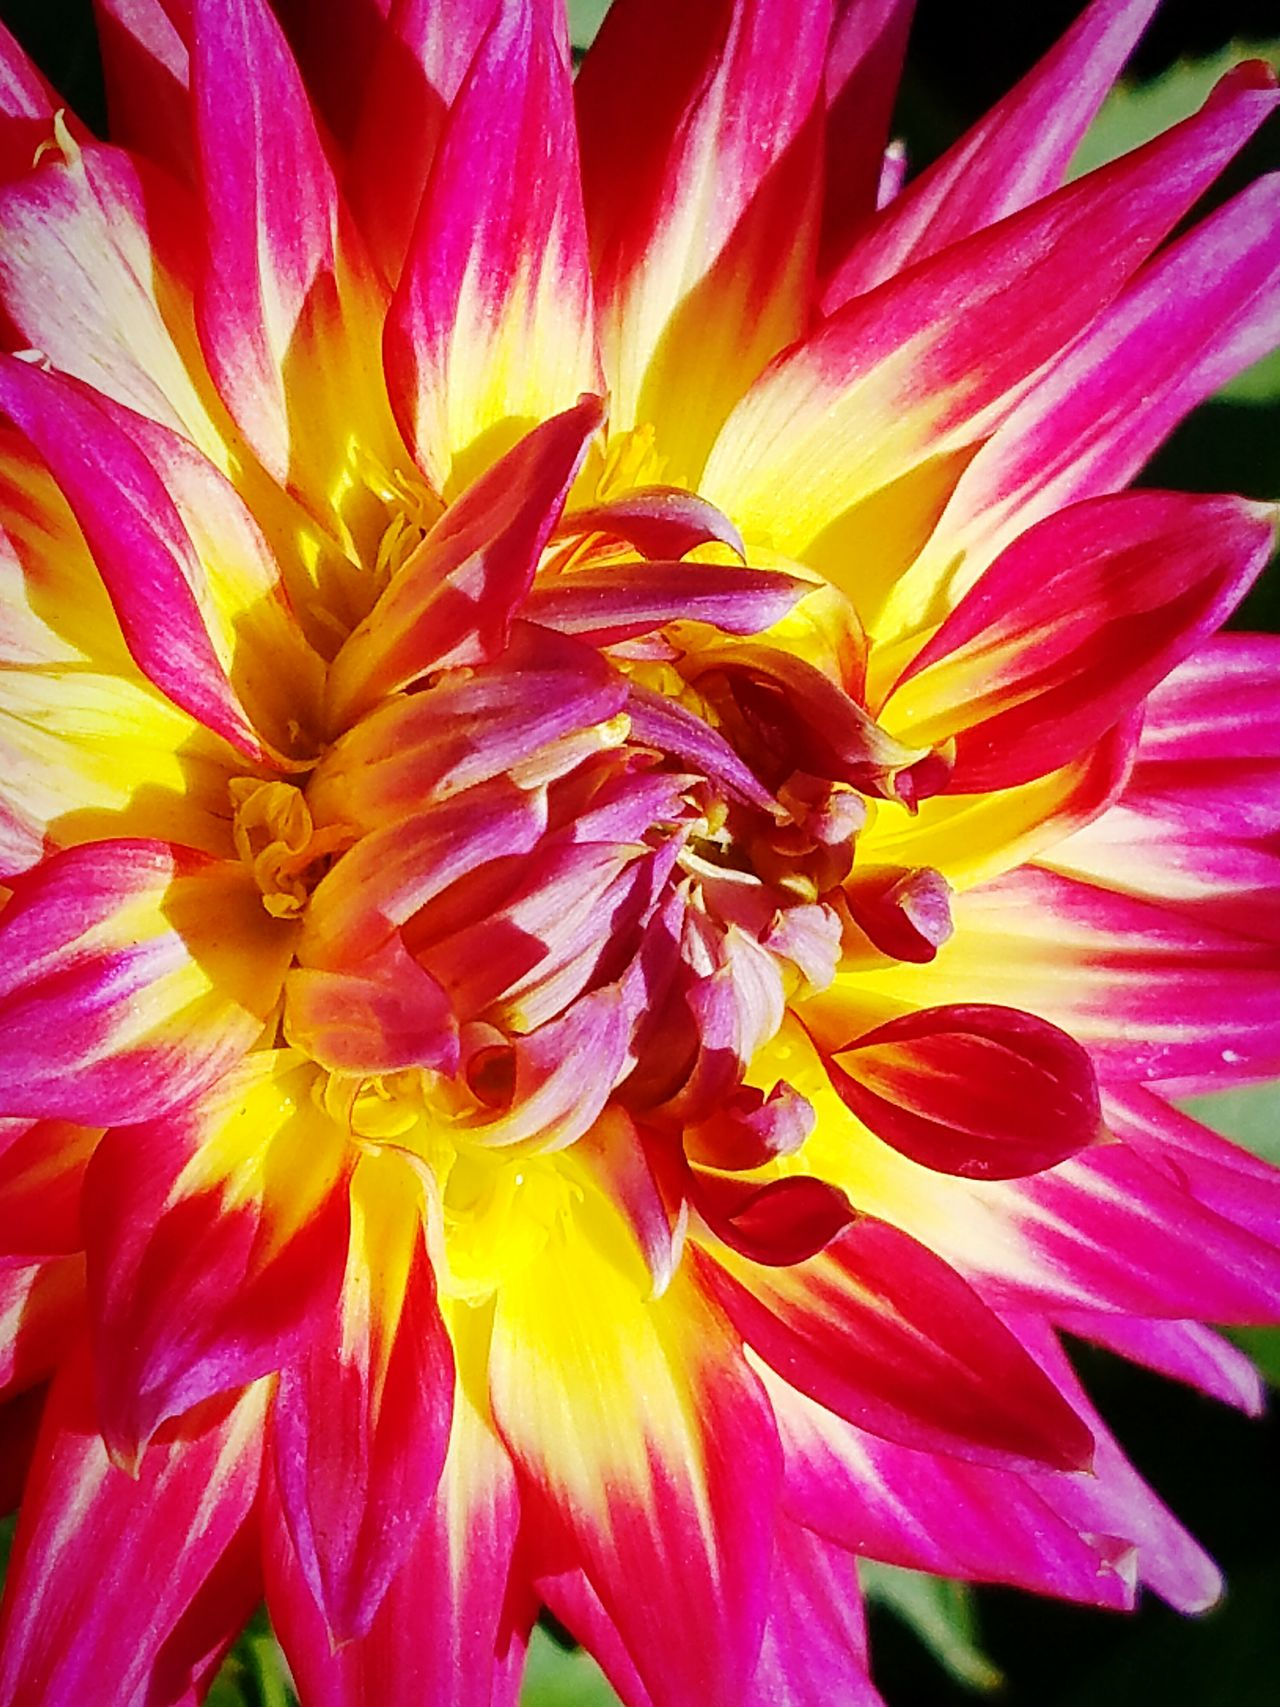 Dahlia Pinkandyellowflower Vividcolors Flowercloseup